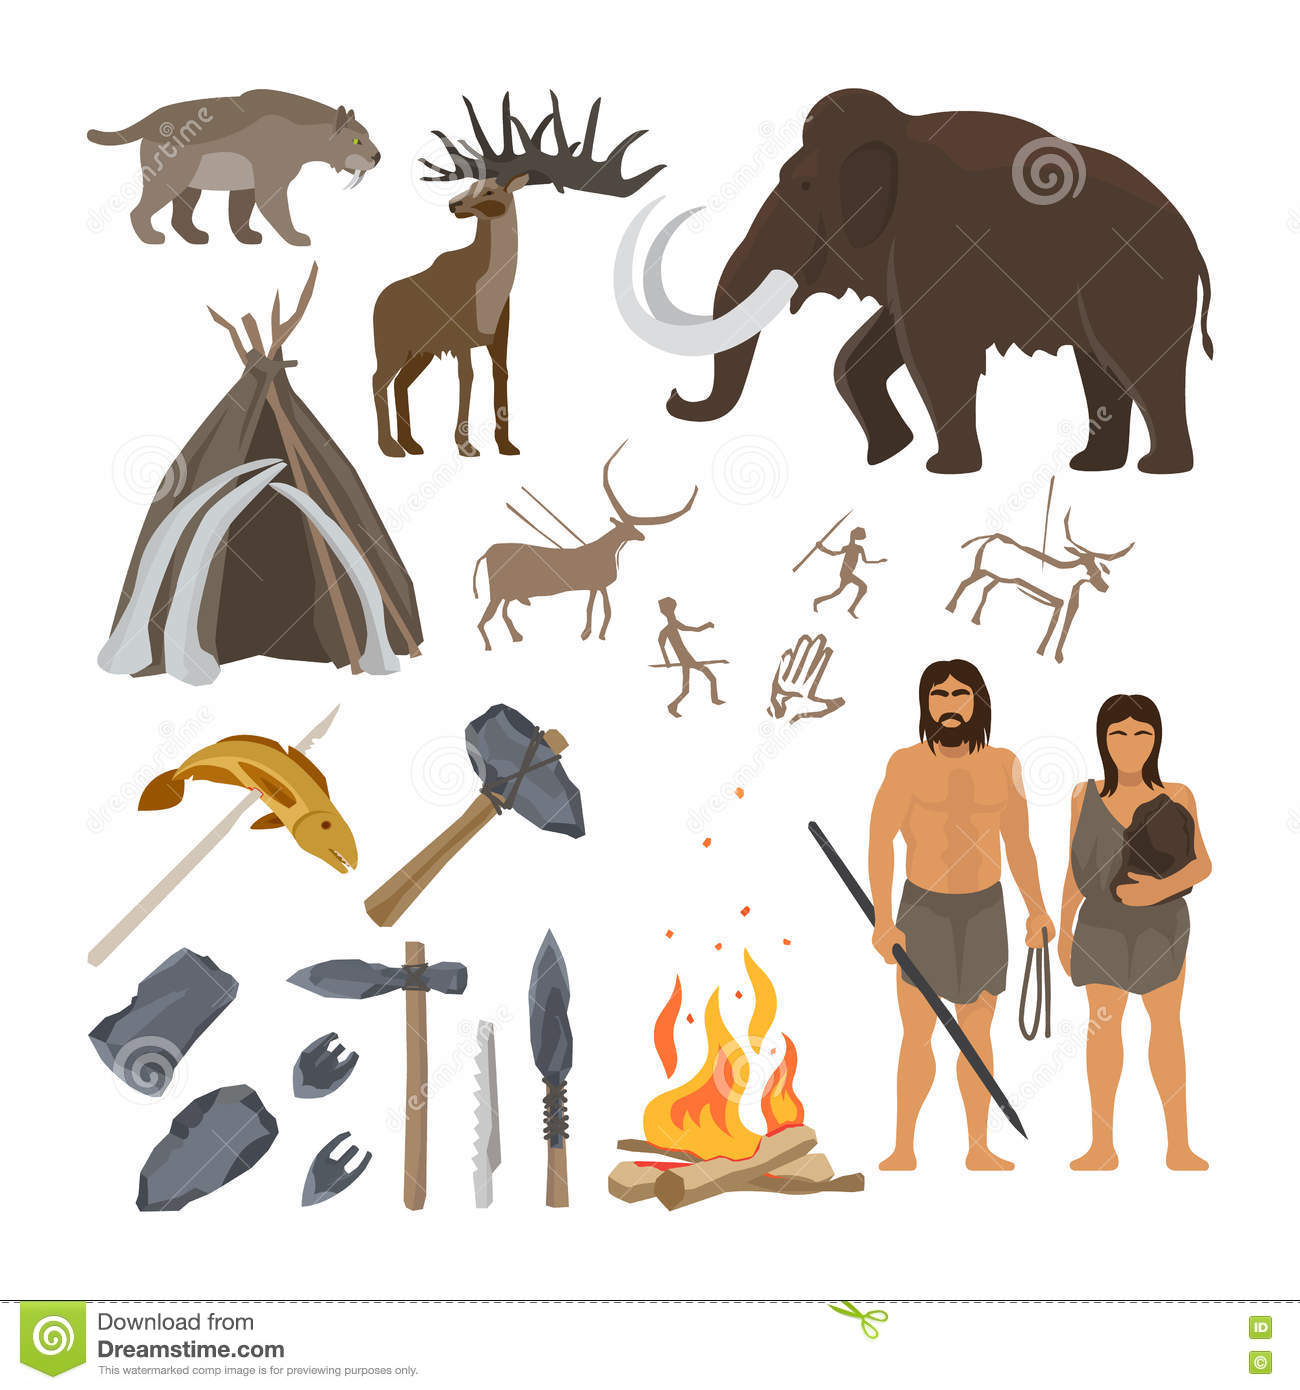 Stone age icons set stock vector. Illustration of cavemen - 78916488